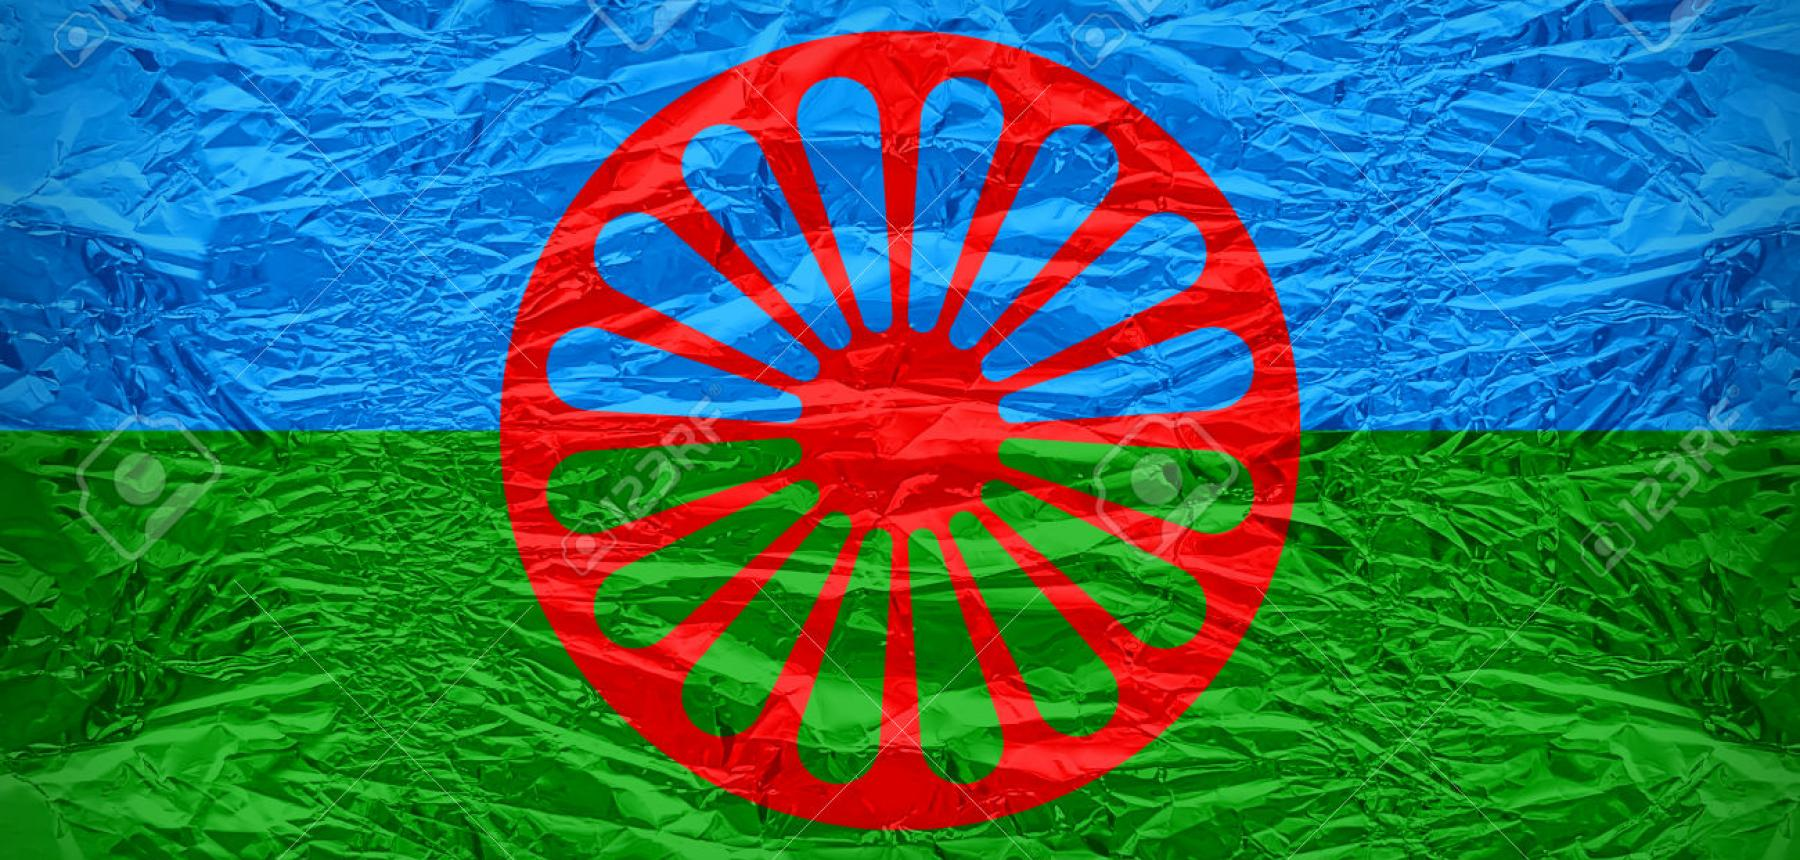 The Romani Flag, used throughout GRTHM